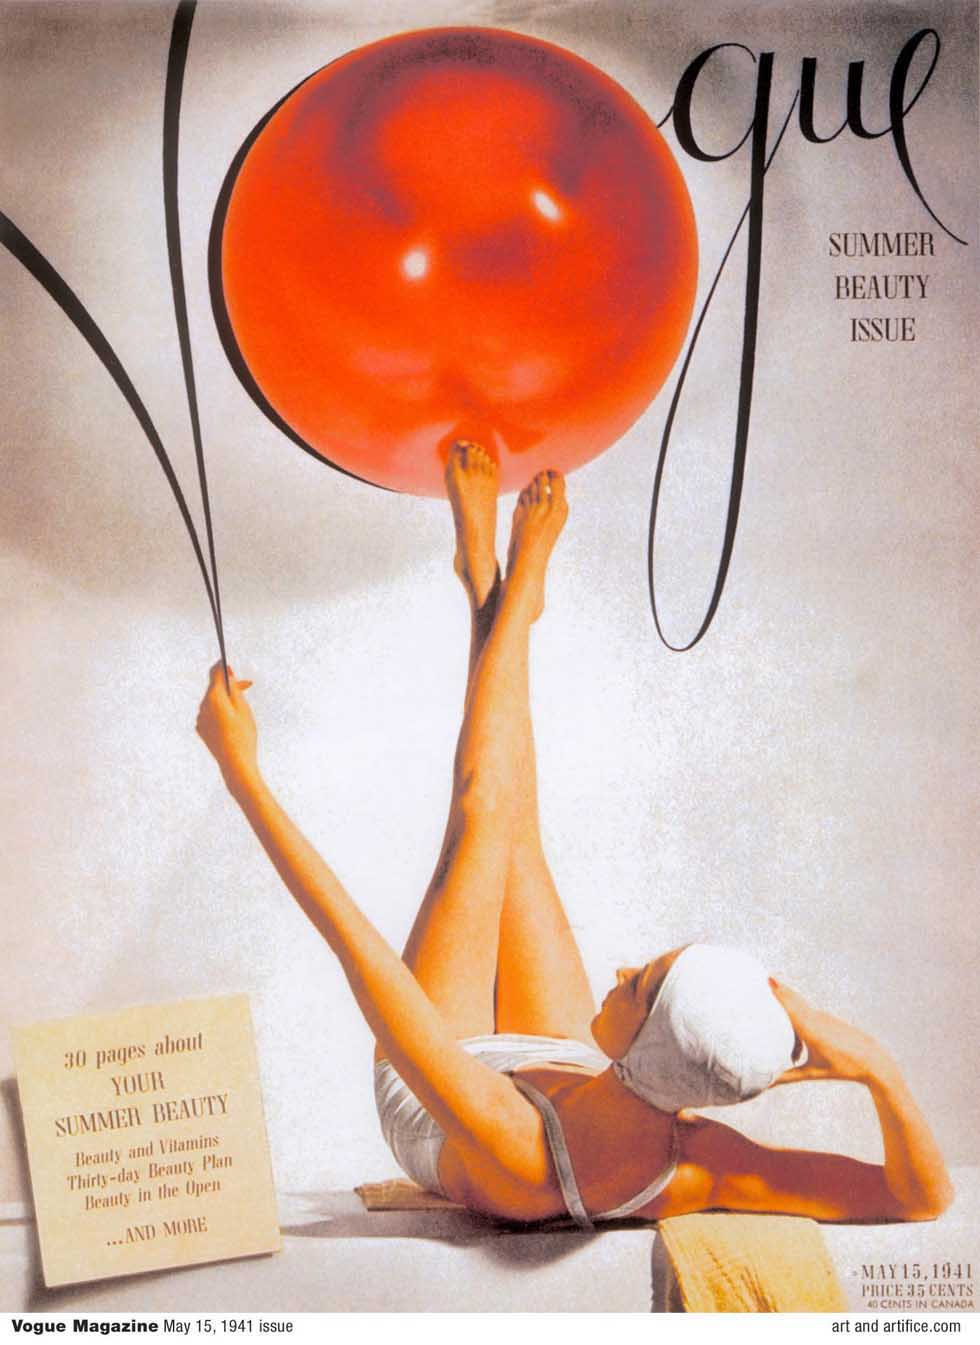 Vogue Magazine Summer Cover 1941 May 15